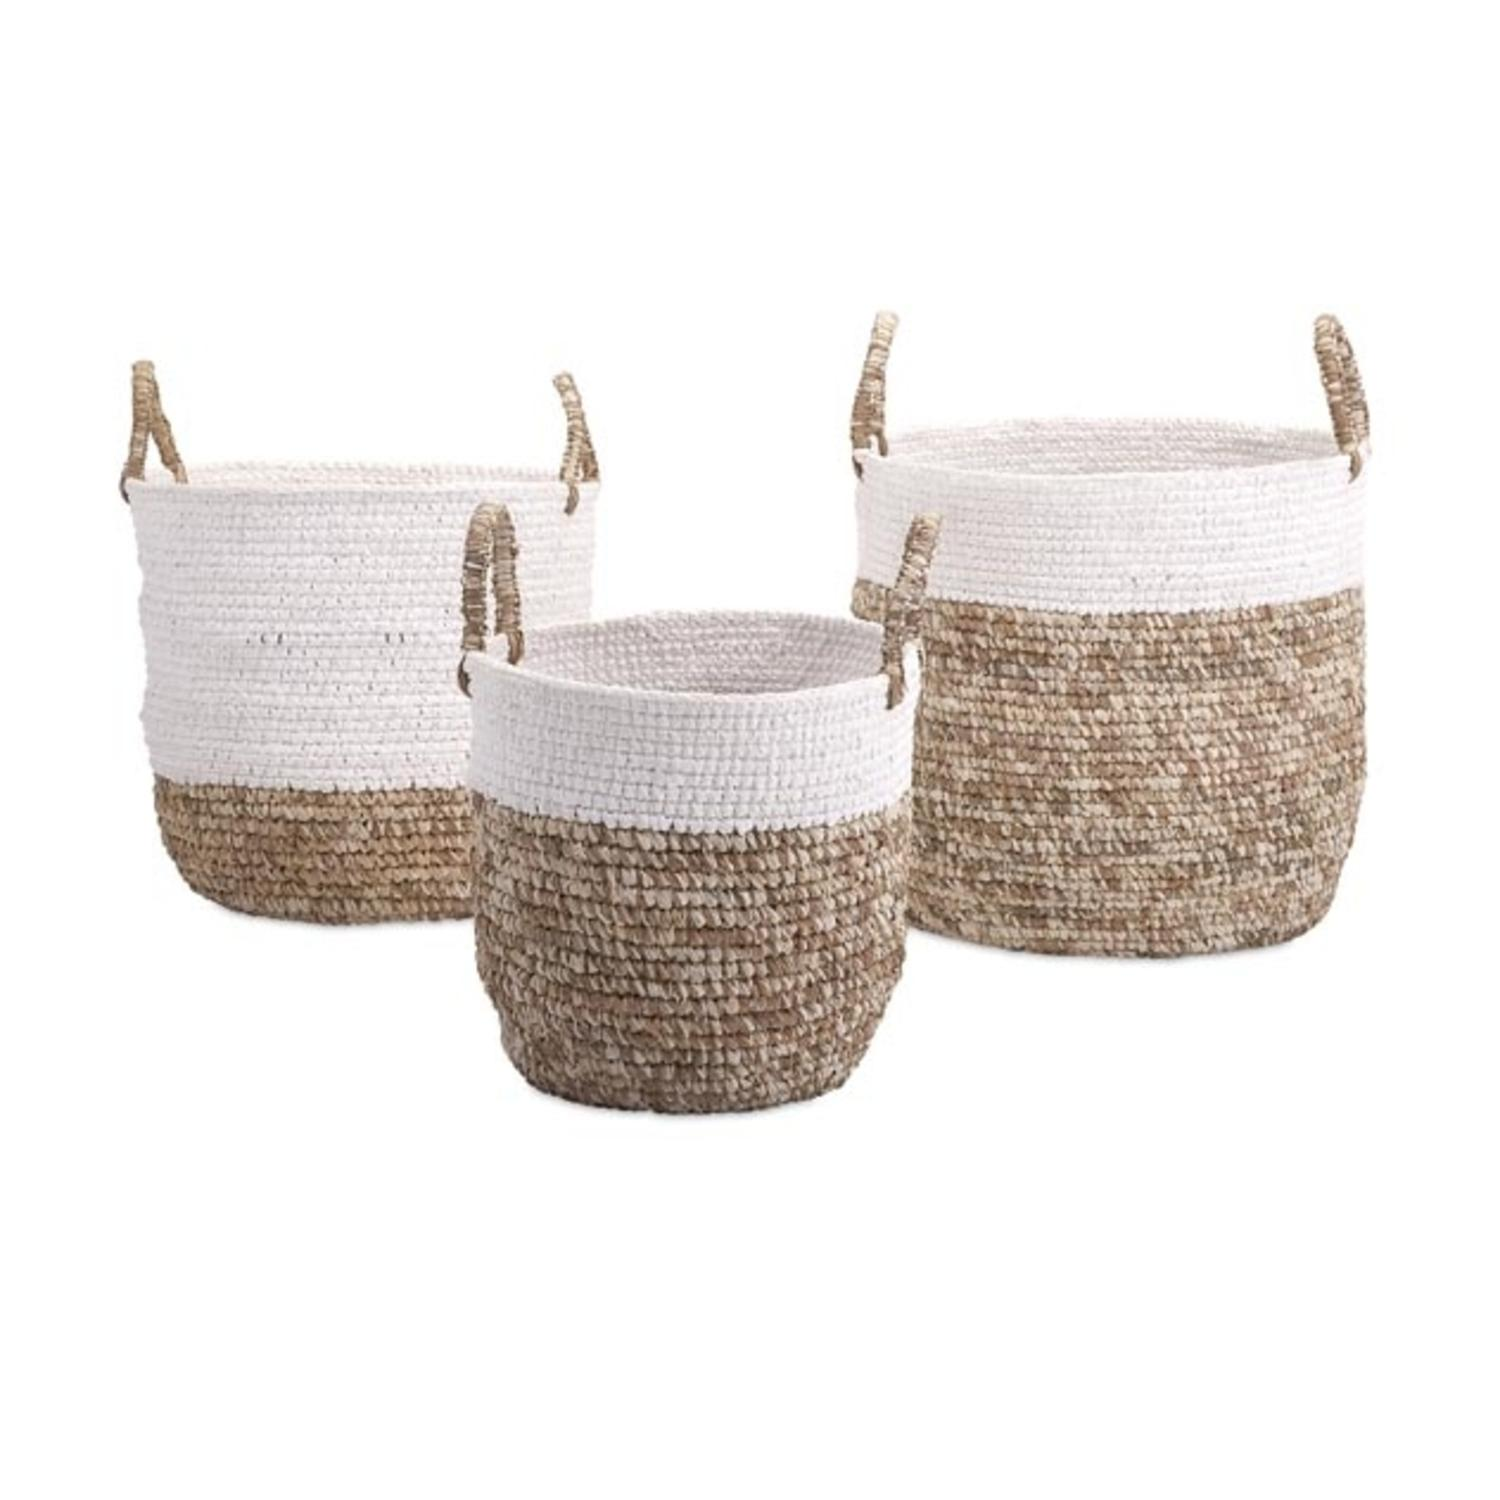 Set of 3 Nautical White Shoelace and Natural Brown Raffia Woven Baskets with Handles  sc 1 st  Walmart.com & Set of 3 Nautical White Shoelace and Natural Brown Raffia Woven ...